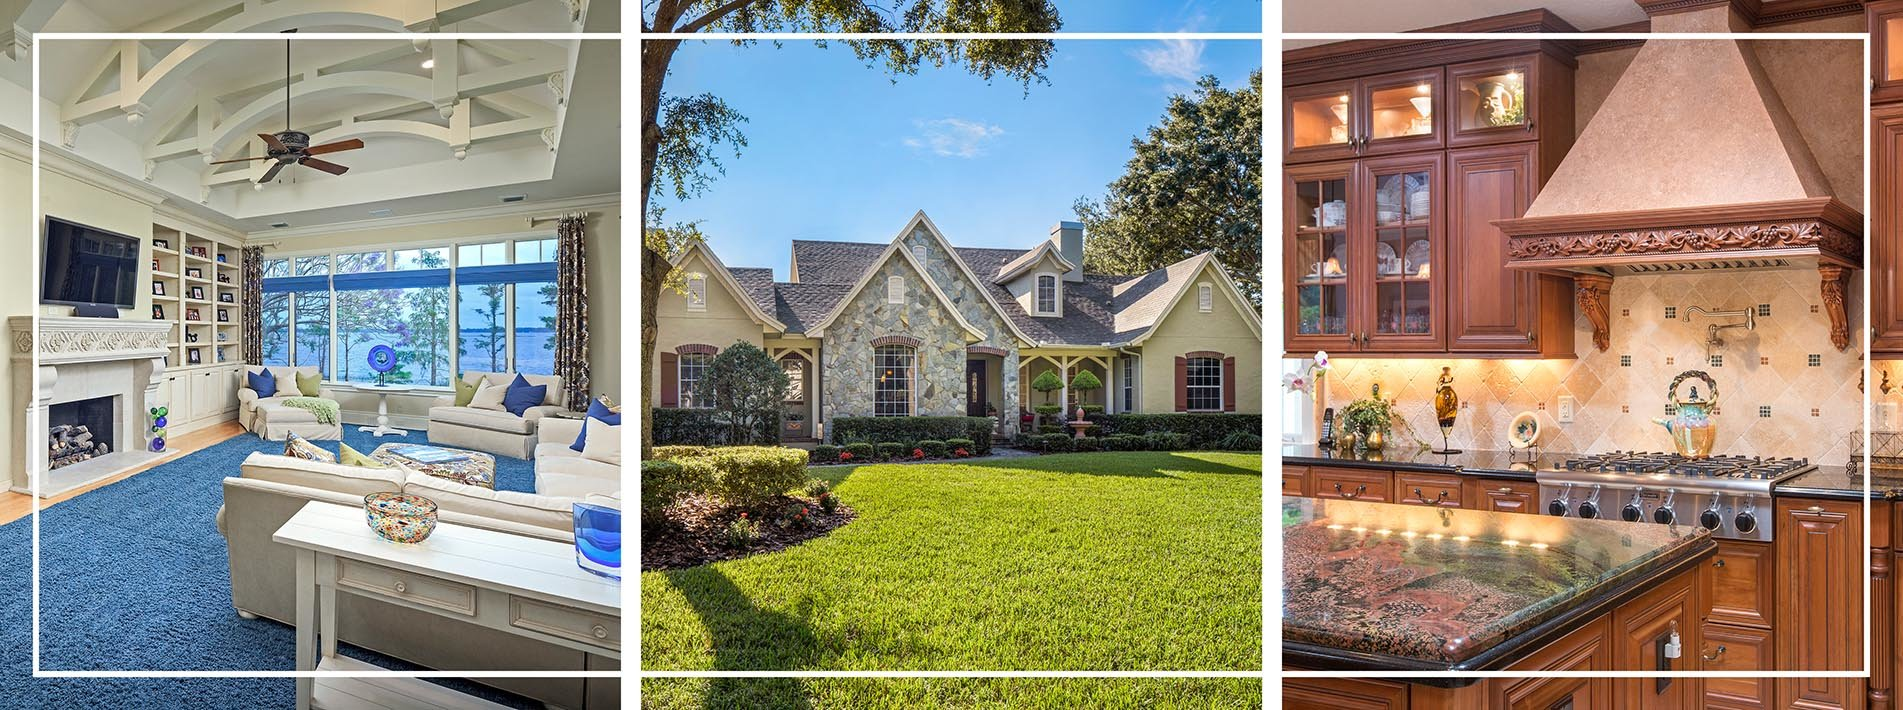 Orlando Featured Real Estate Listings